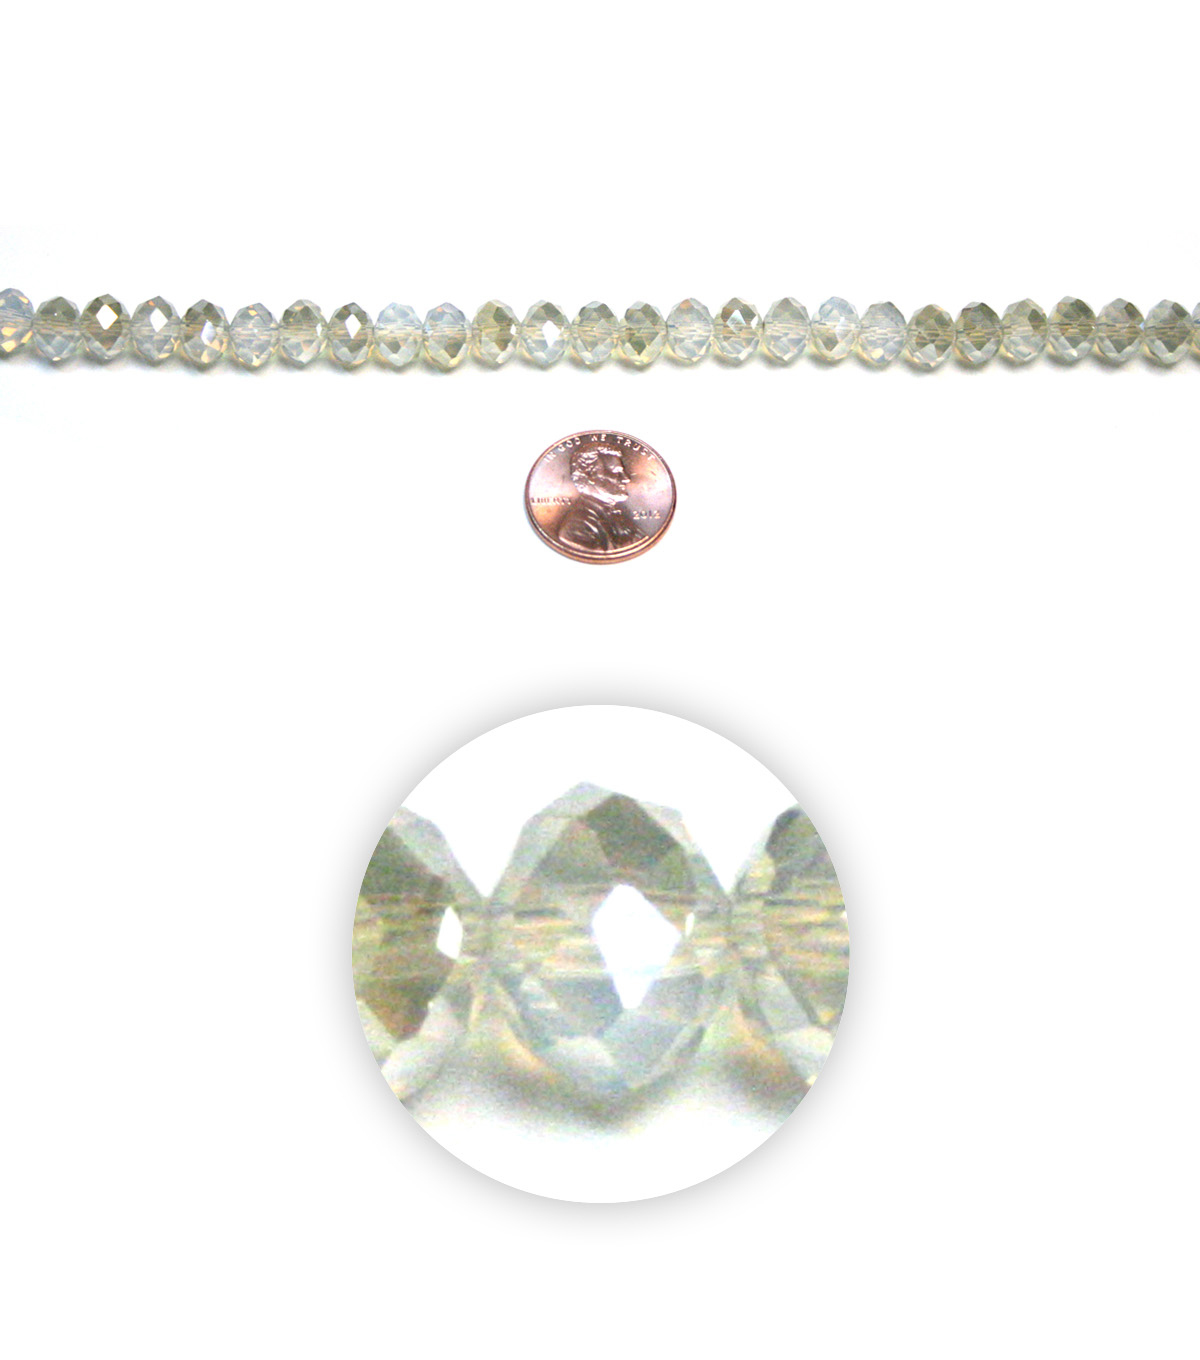 Terra Crystalline Glass Beads